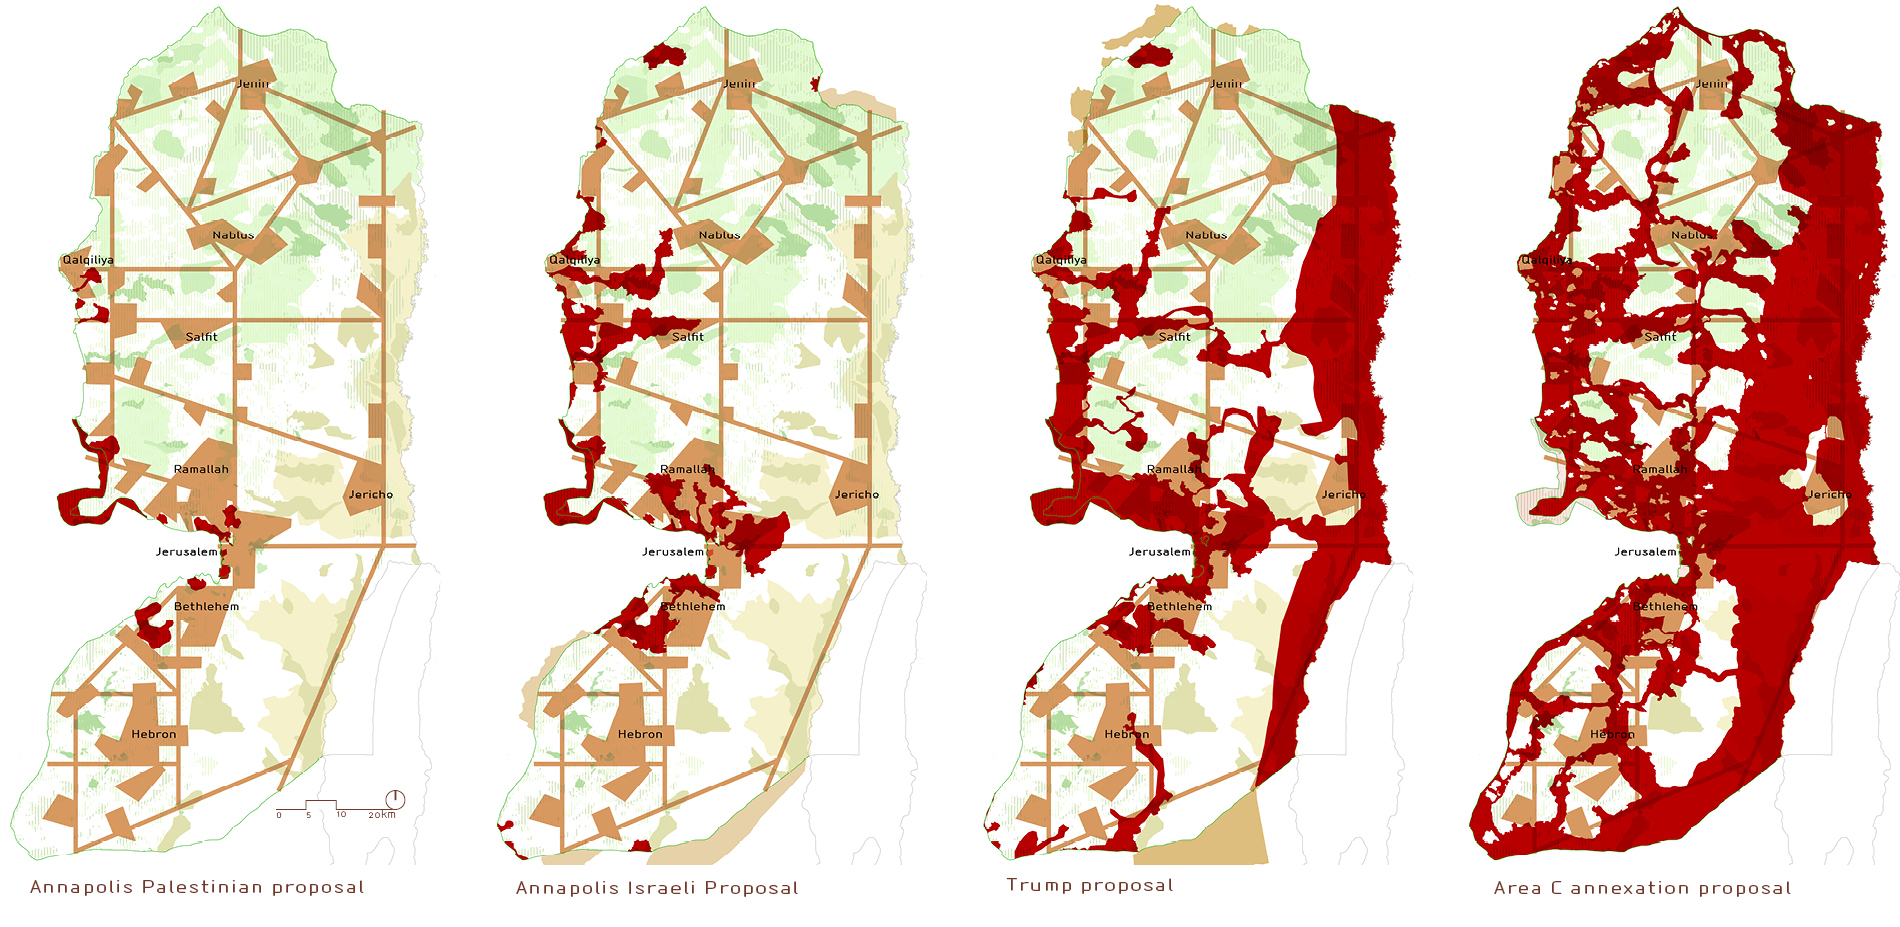 2.2. Palestinian open spaces and development - with previously proposed borders.